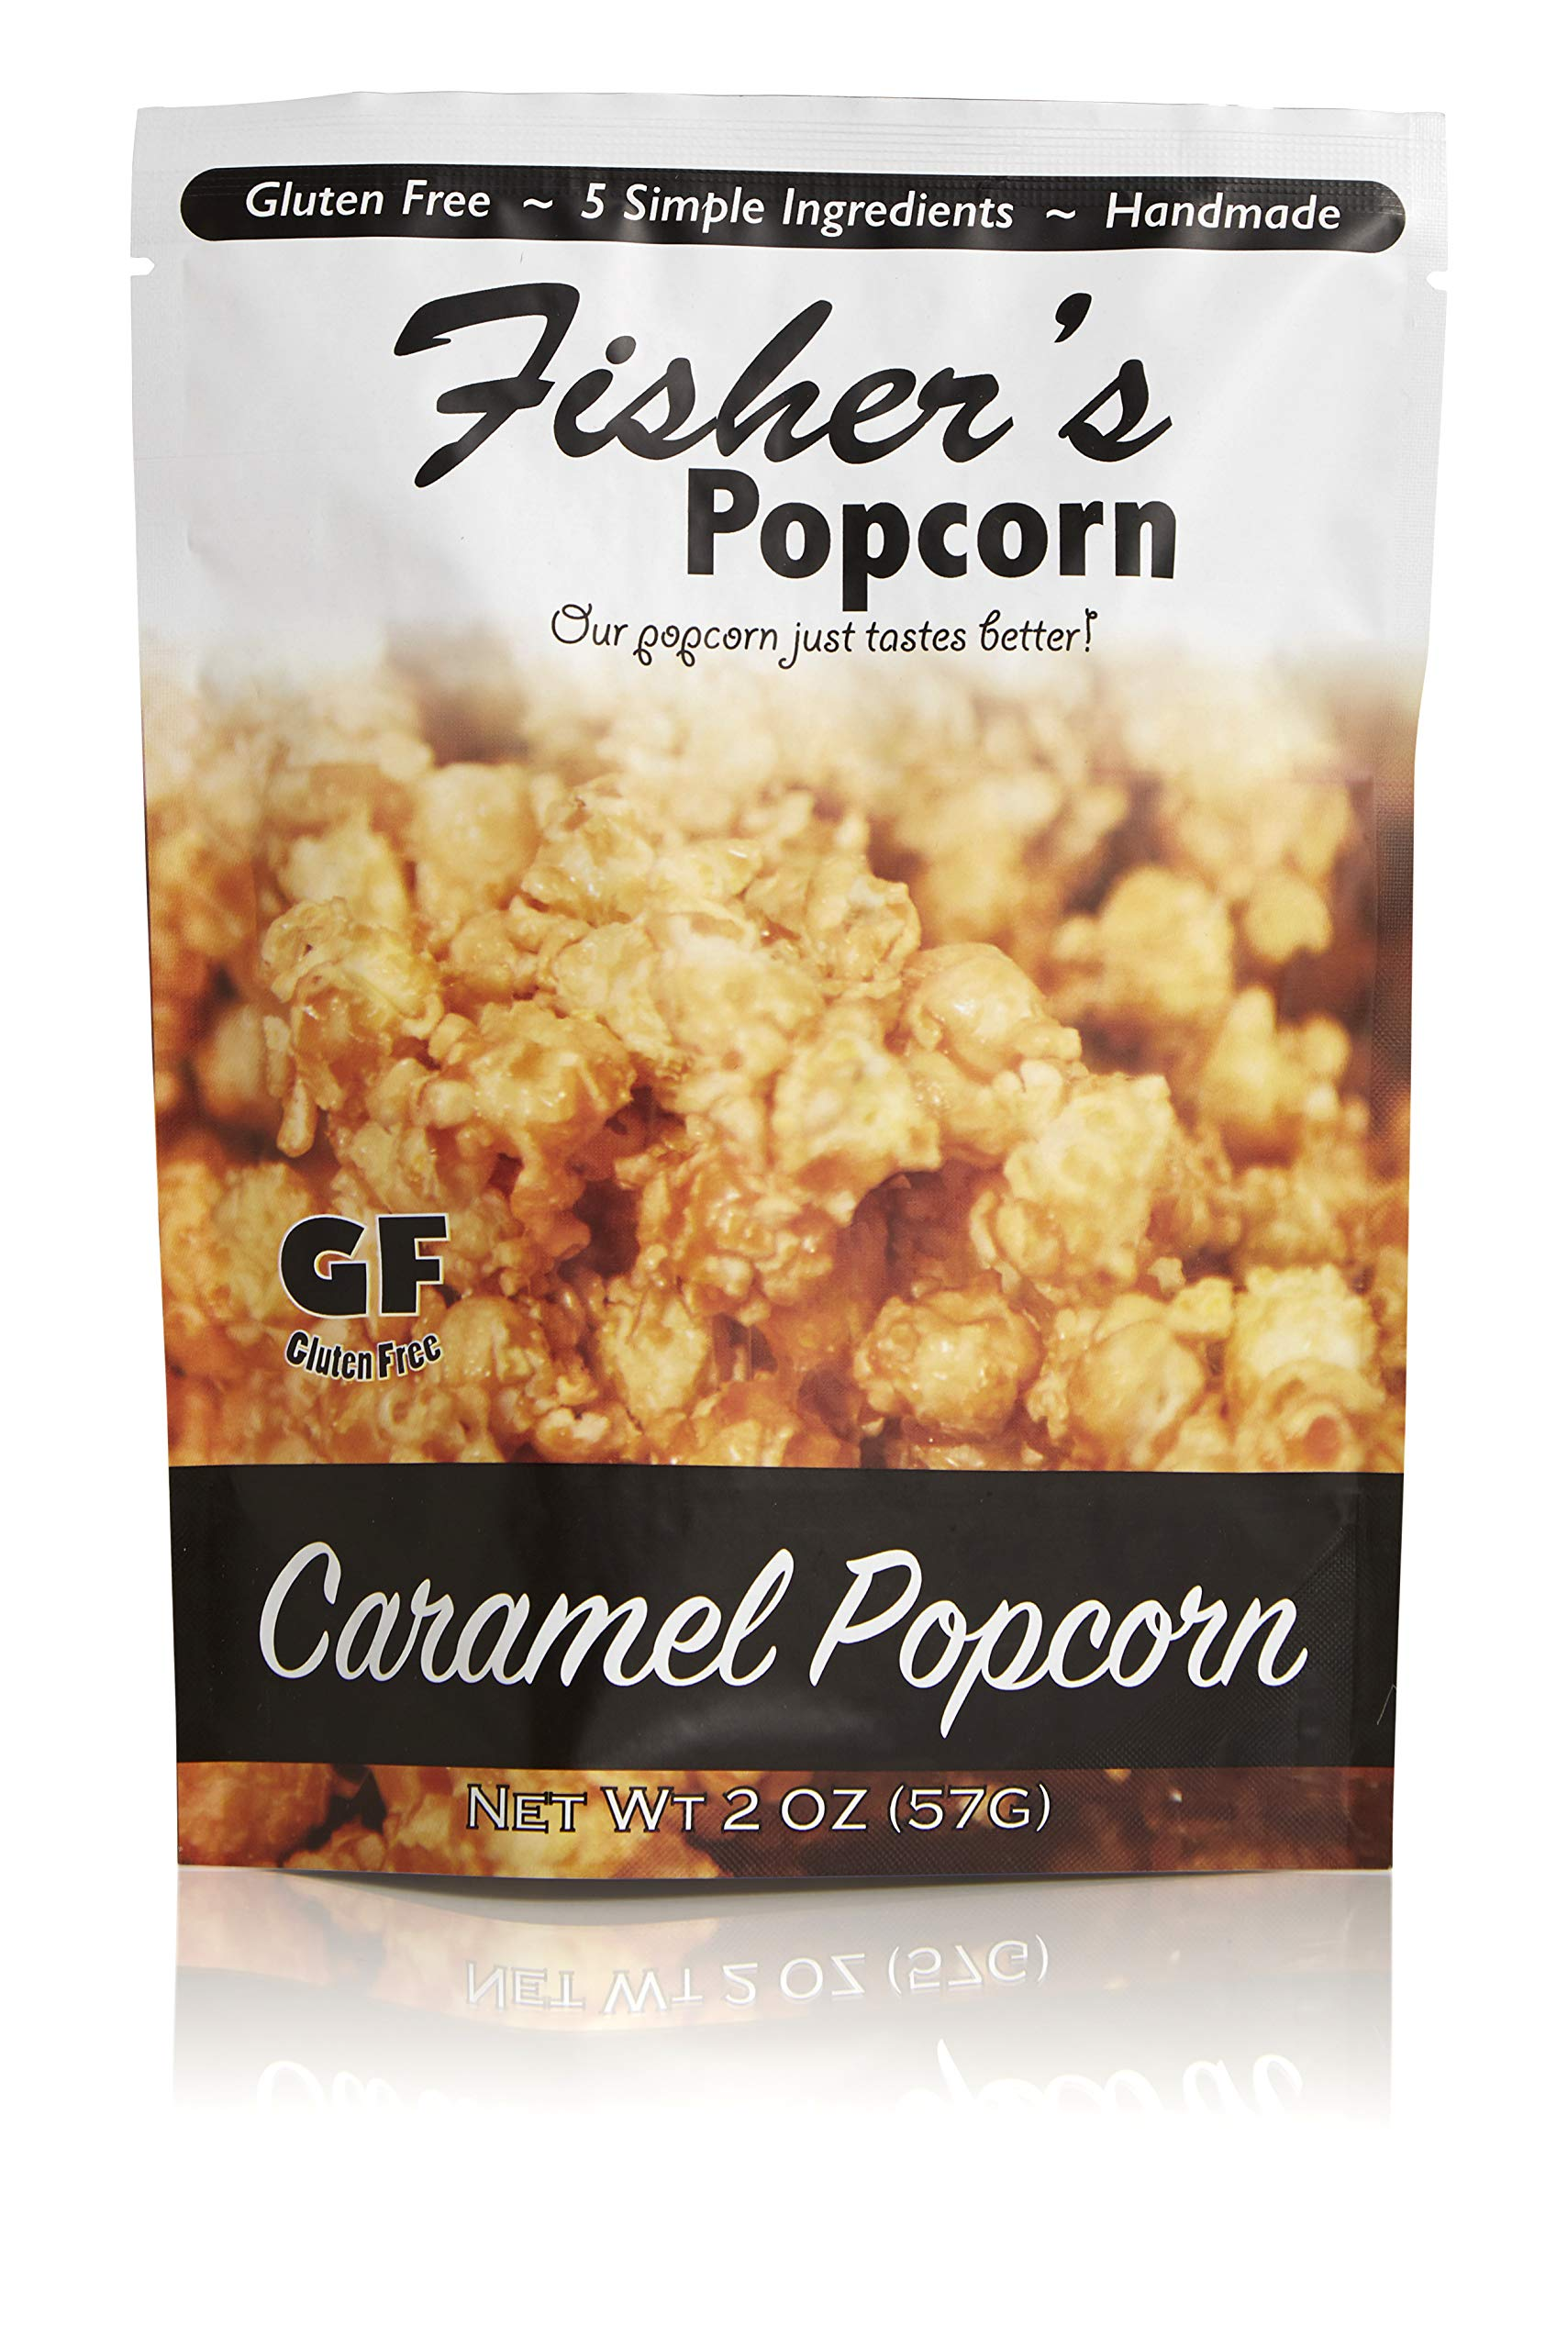 Fisher's Popcorn Caramel Popcorn, Gluten Free, 5 Simple Ingredients, Handmade, No Preservatives, No High Fructose Corn Syrup, Zero Trans Fat, 2oz Bags (Case of 50) by Fisher's Popcorn (Image #1)